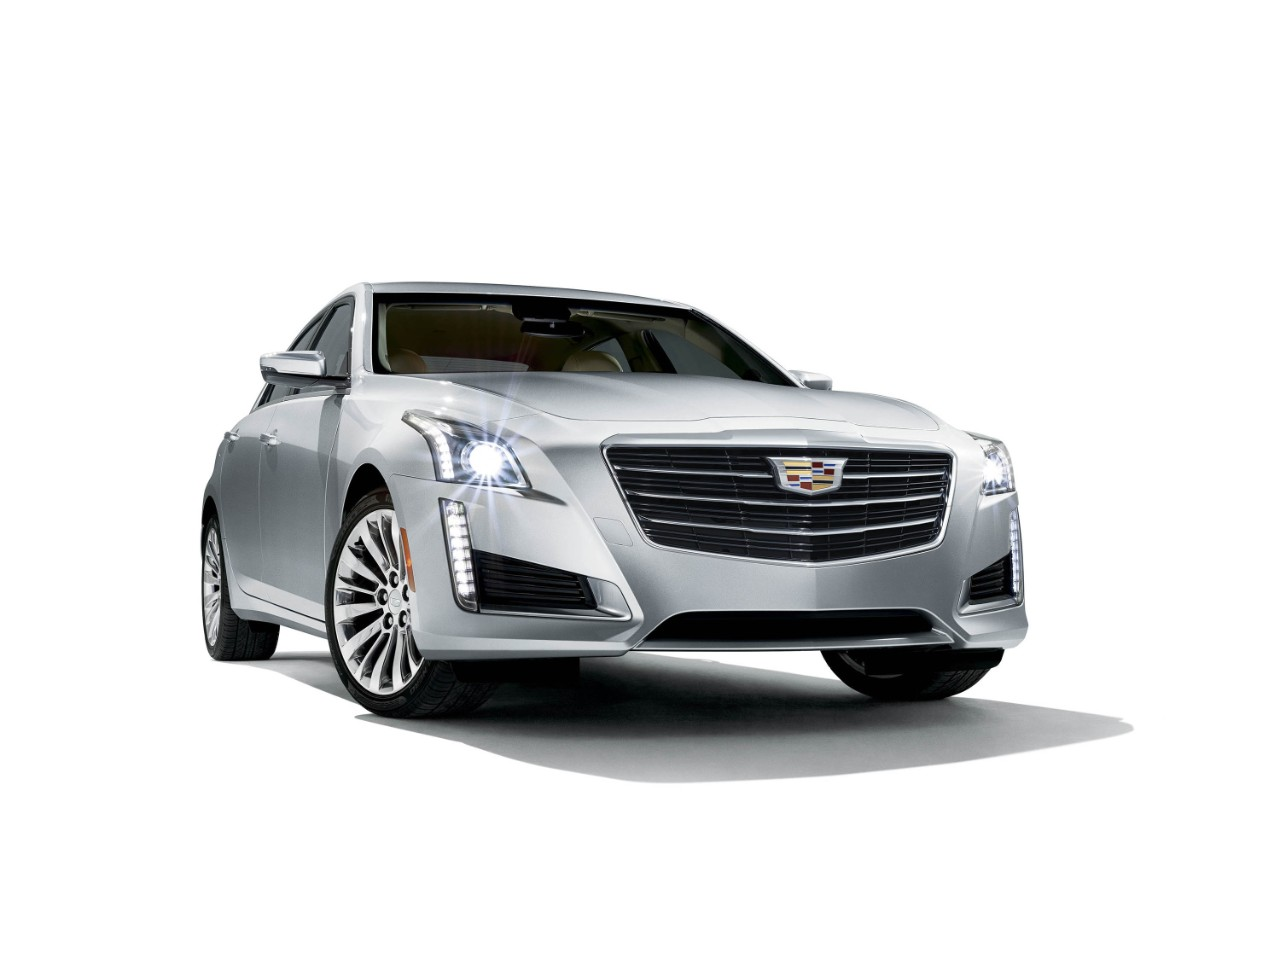 Updates for the 2015 Cadillac CTS